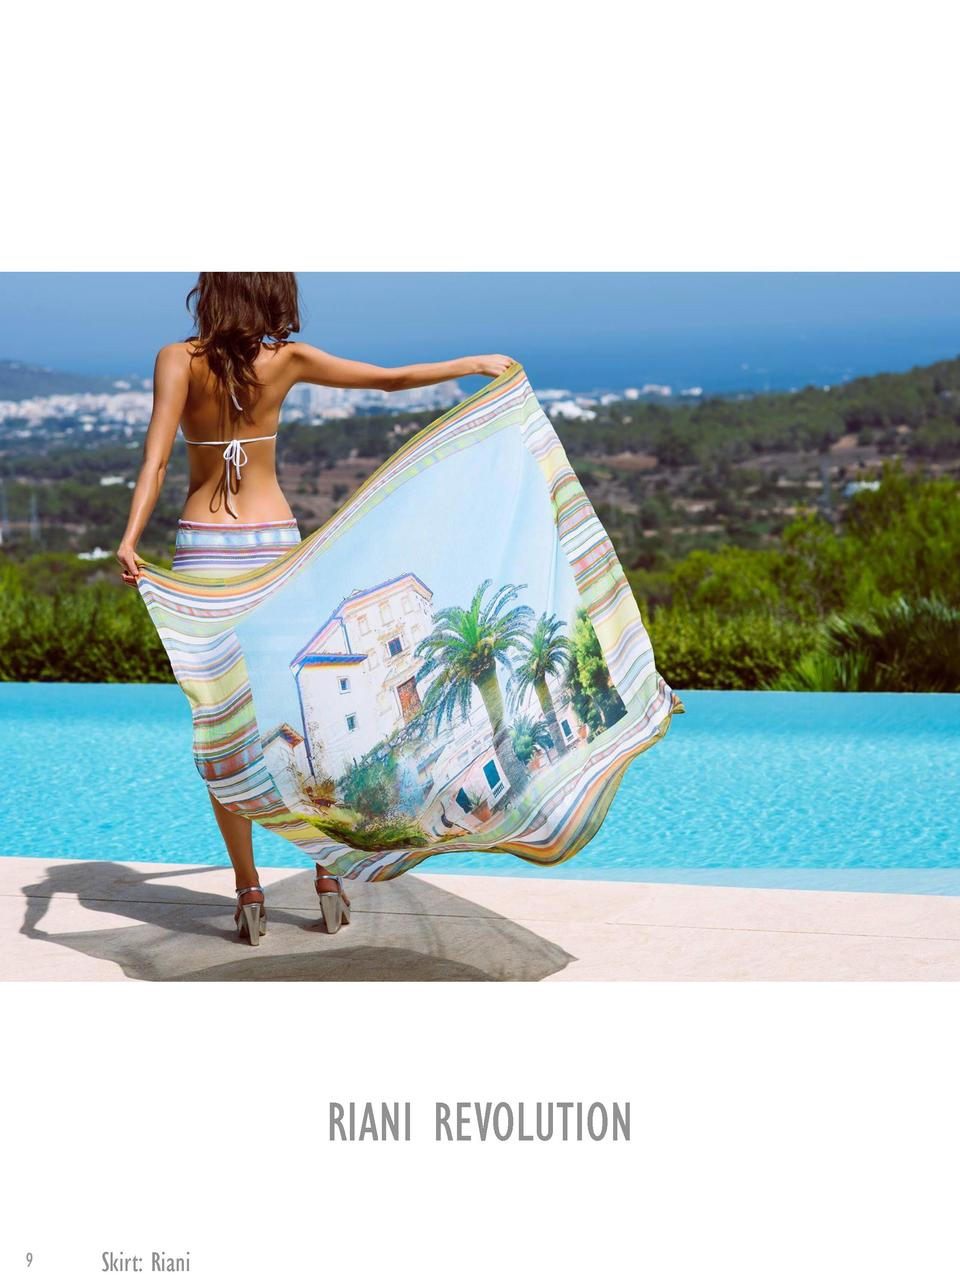 RIANI REVOLUTION 9  Skirt  Riani